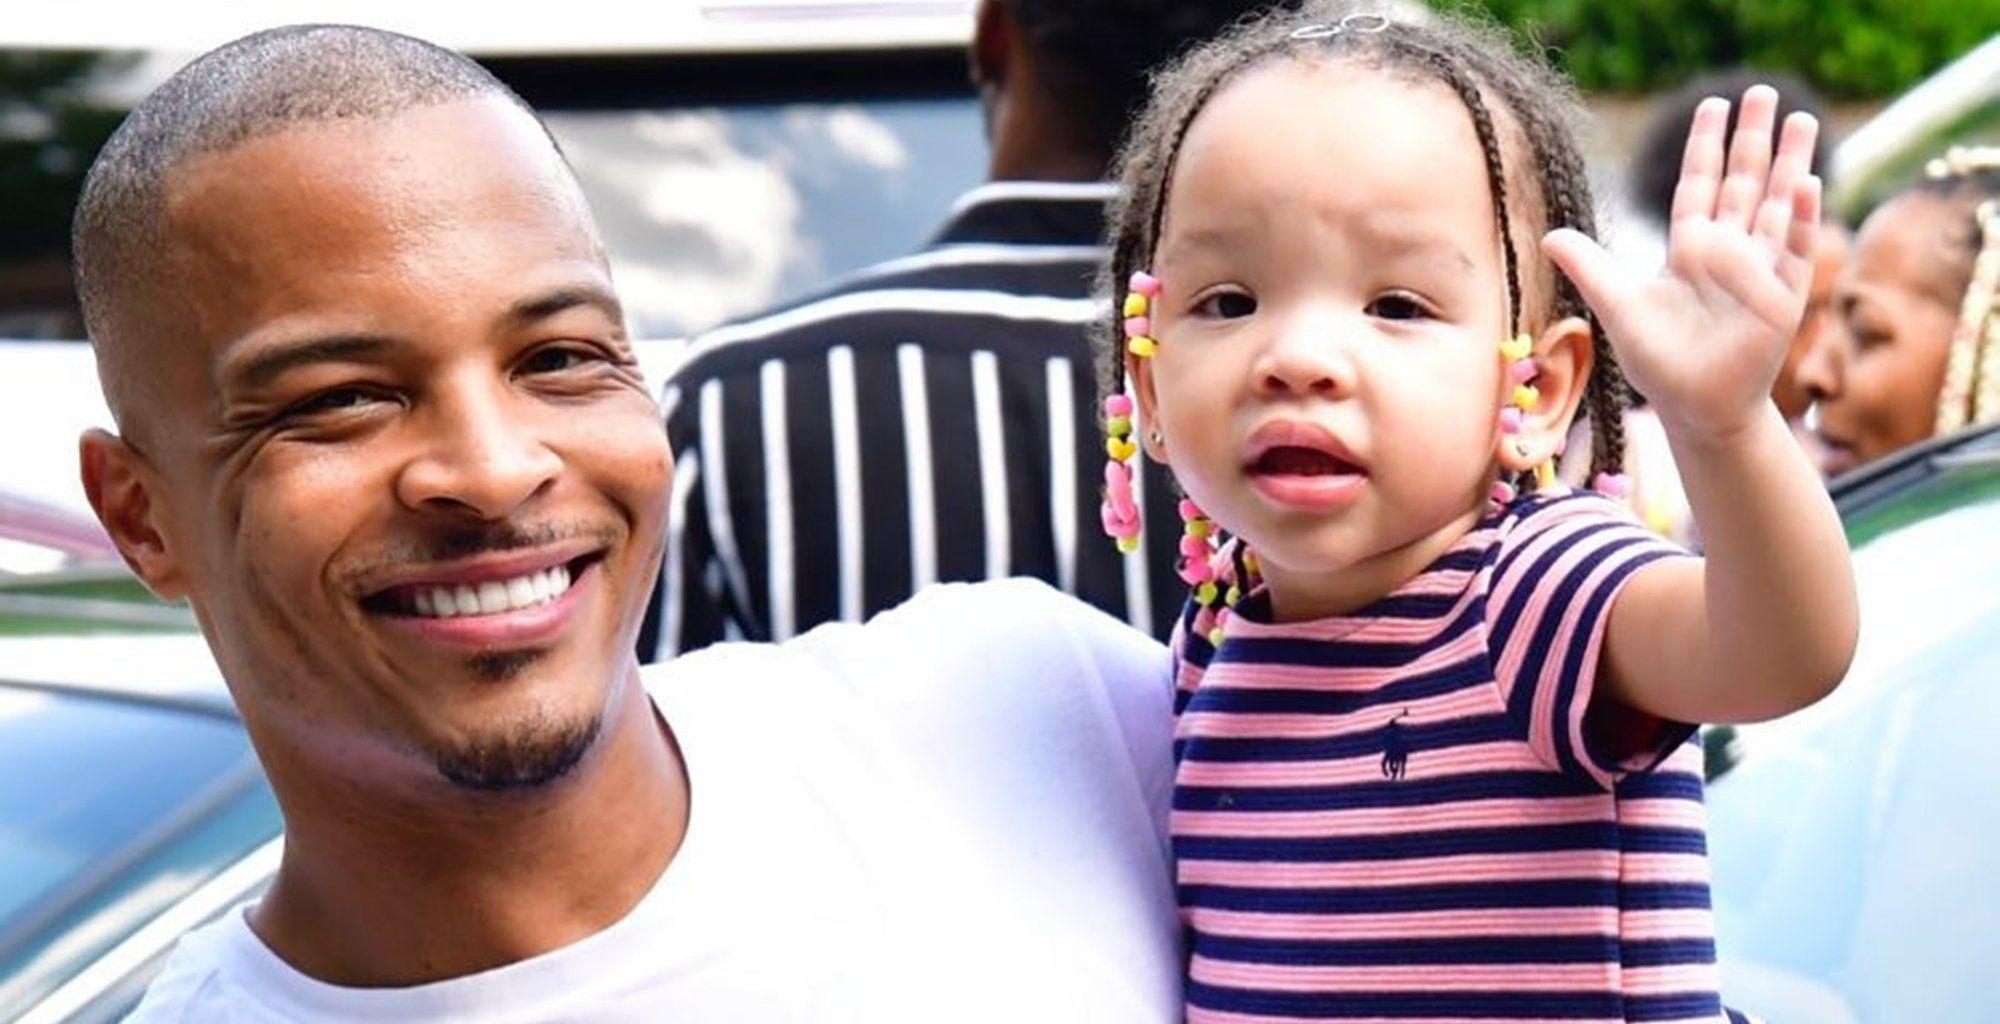 Heiress Harris Is An African Princess In The Latest Video Posted By T.I.